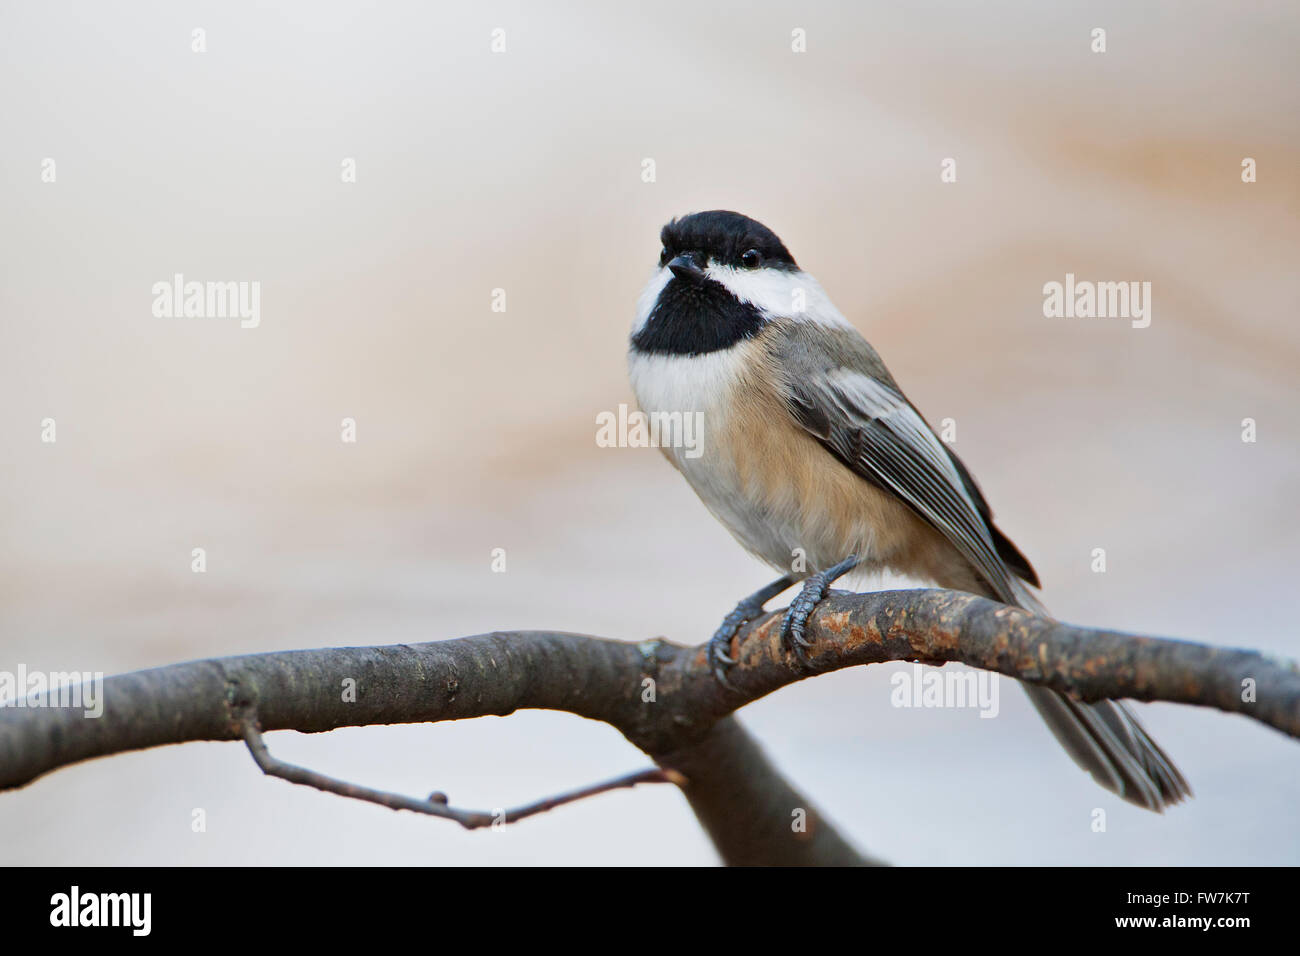 Carolina Chickadee (Poecile carolinensis) sitting on tree branch, Amherst Island, Canada - Stock Image